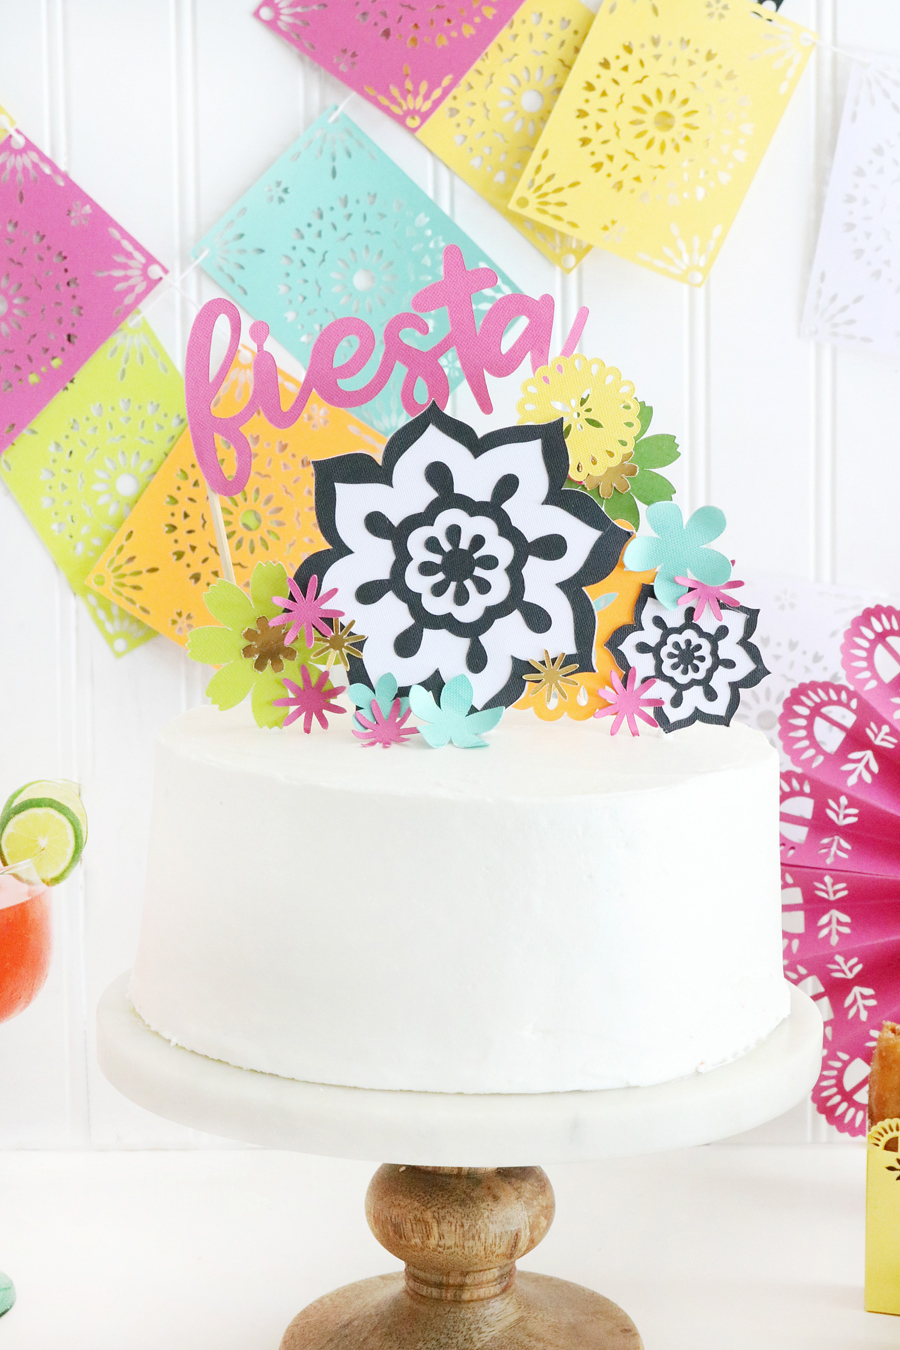 Easy DIY Fiesta Inspired Cake Toppers with Cricut Maker